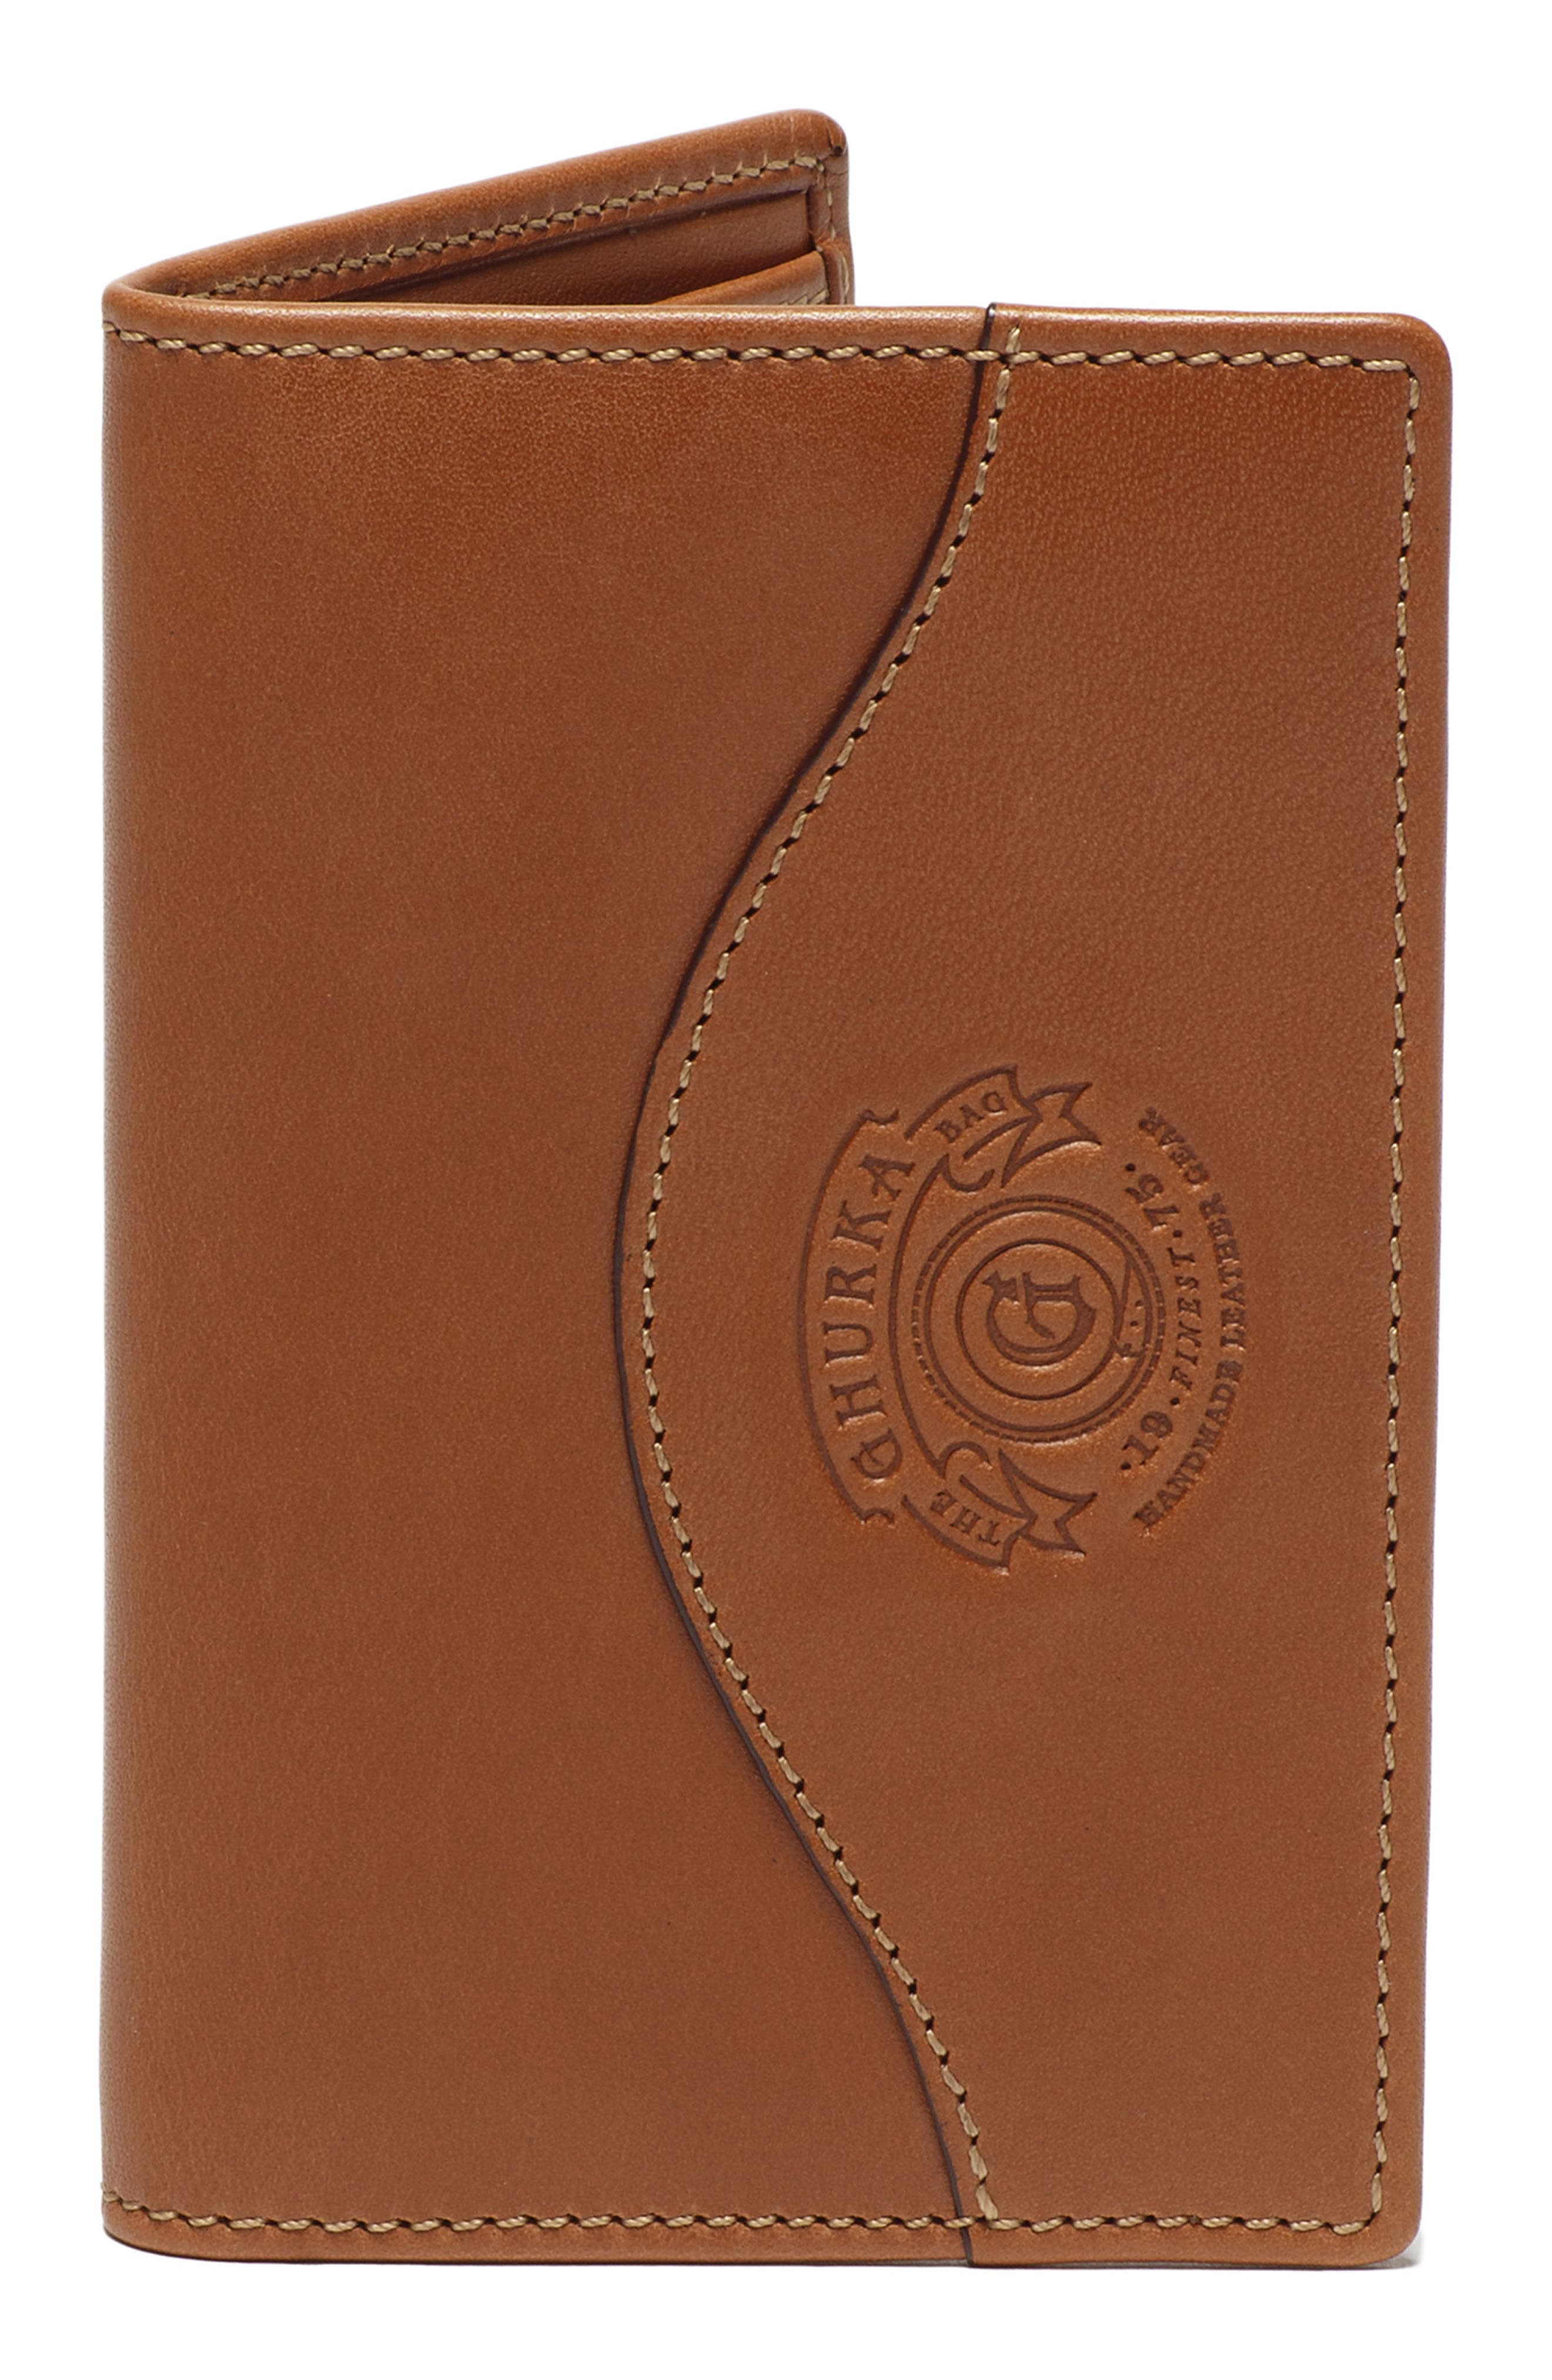 GHURKA Ghukra Folding Leather Card Case